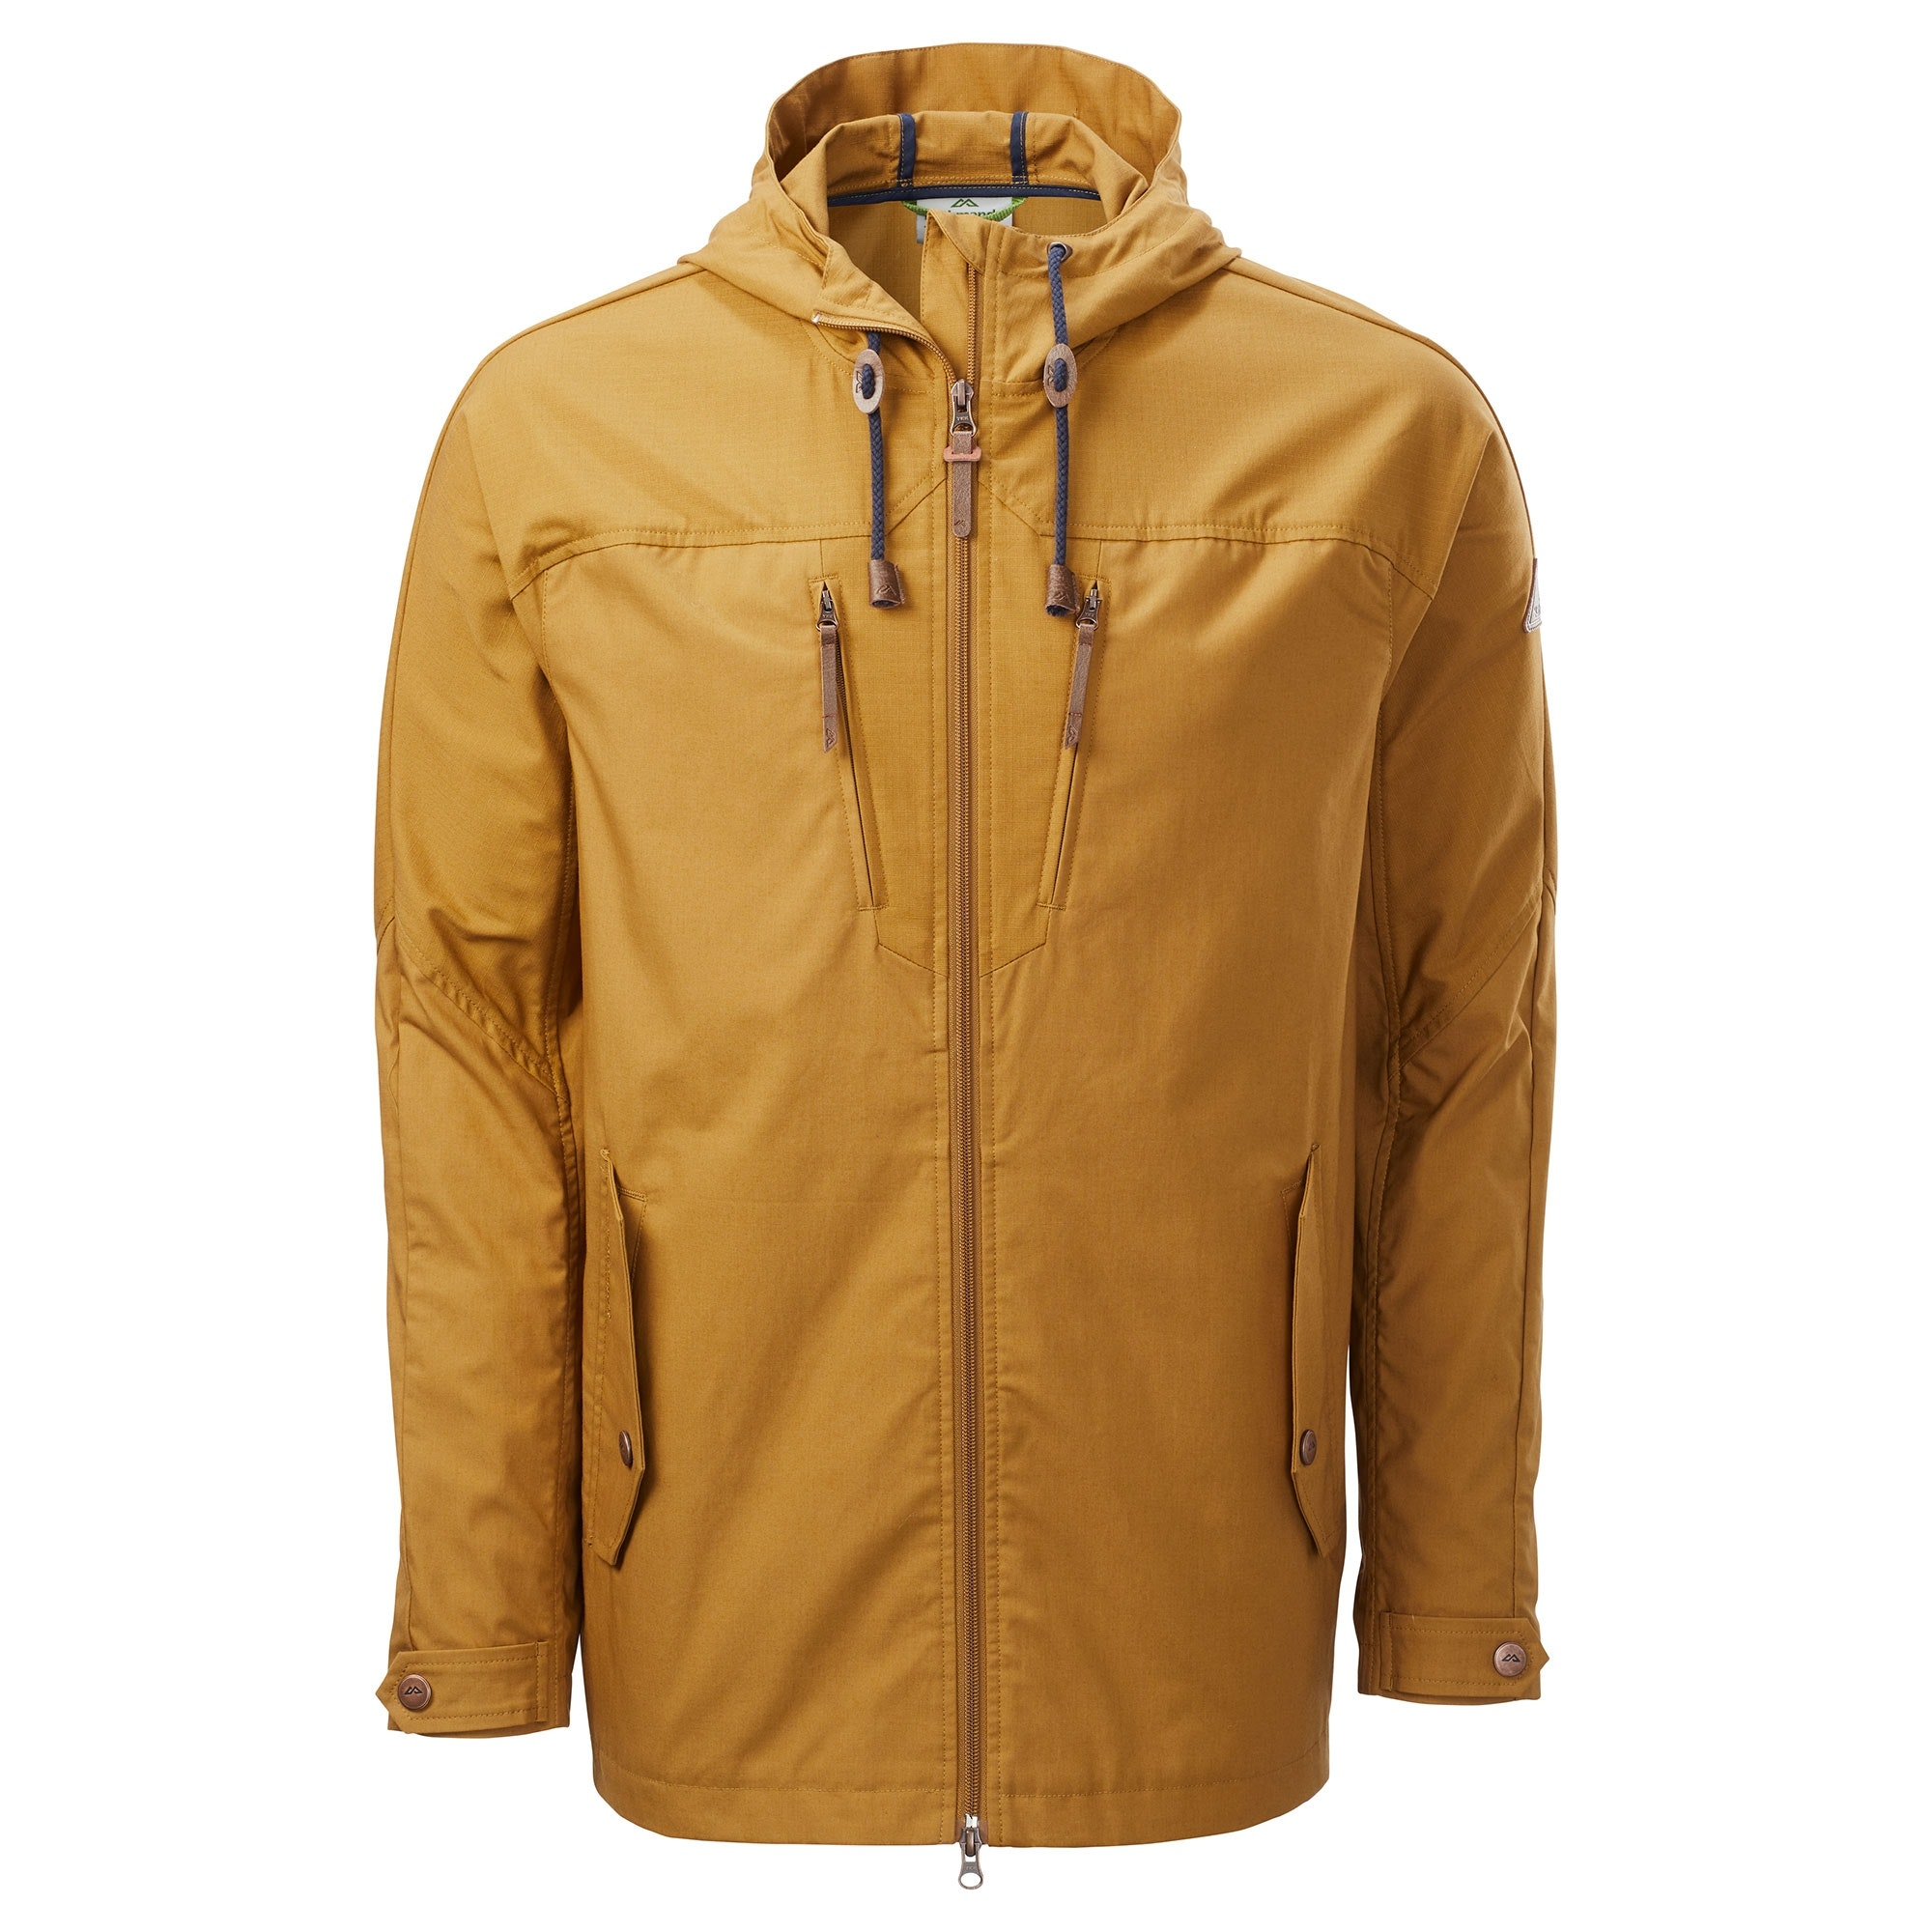 New Ladies Fashionable Short Rainproof Jacket Size 10 Xs By Peregrine Uk Reputation First Coats, Jackets & Vests Clothing, Shoes & Accessories